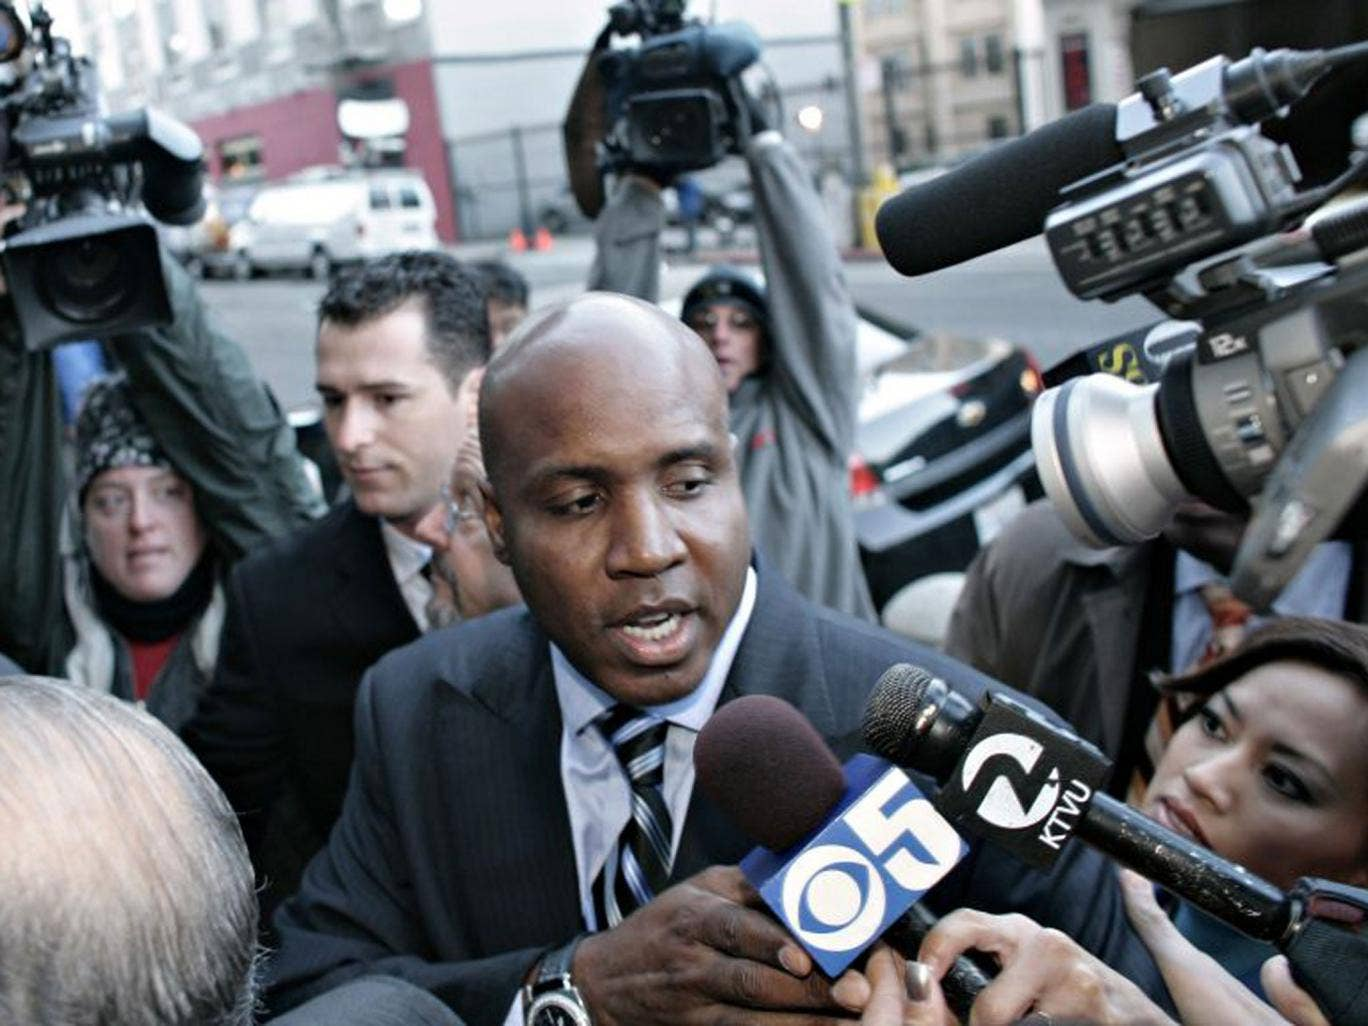 Barry Bonds has been blackballed from baseball's Hall of Fame